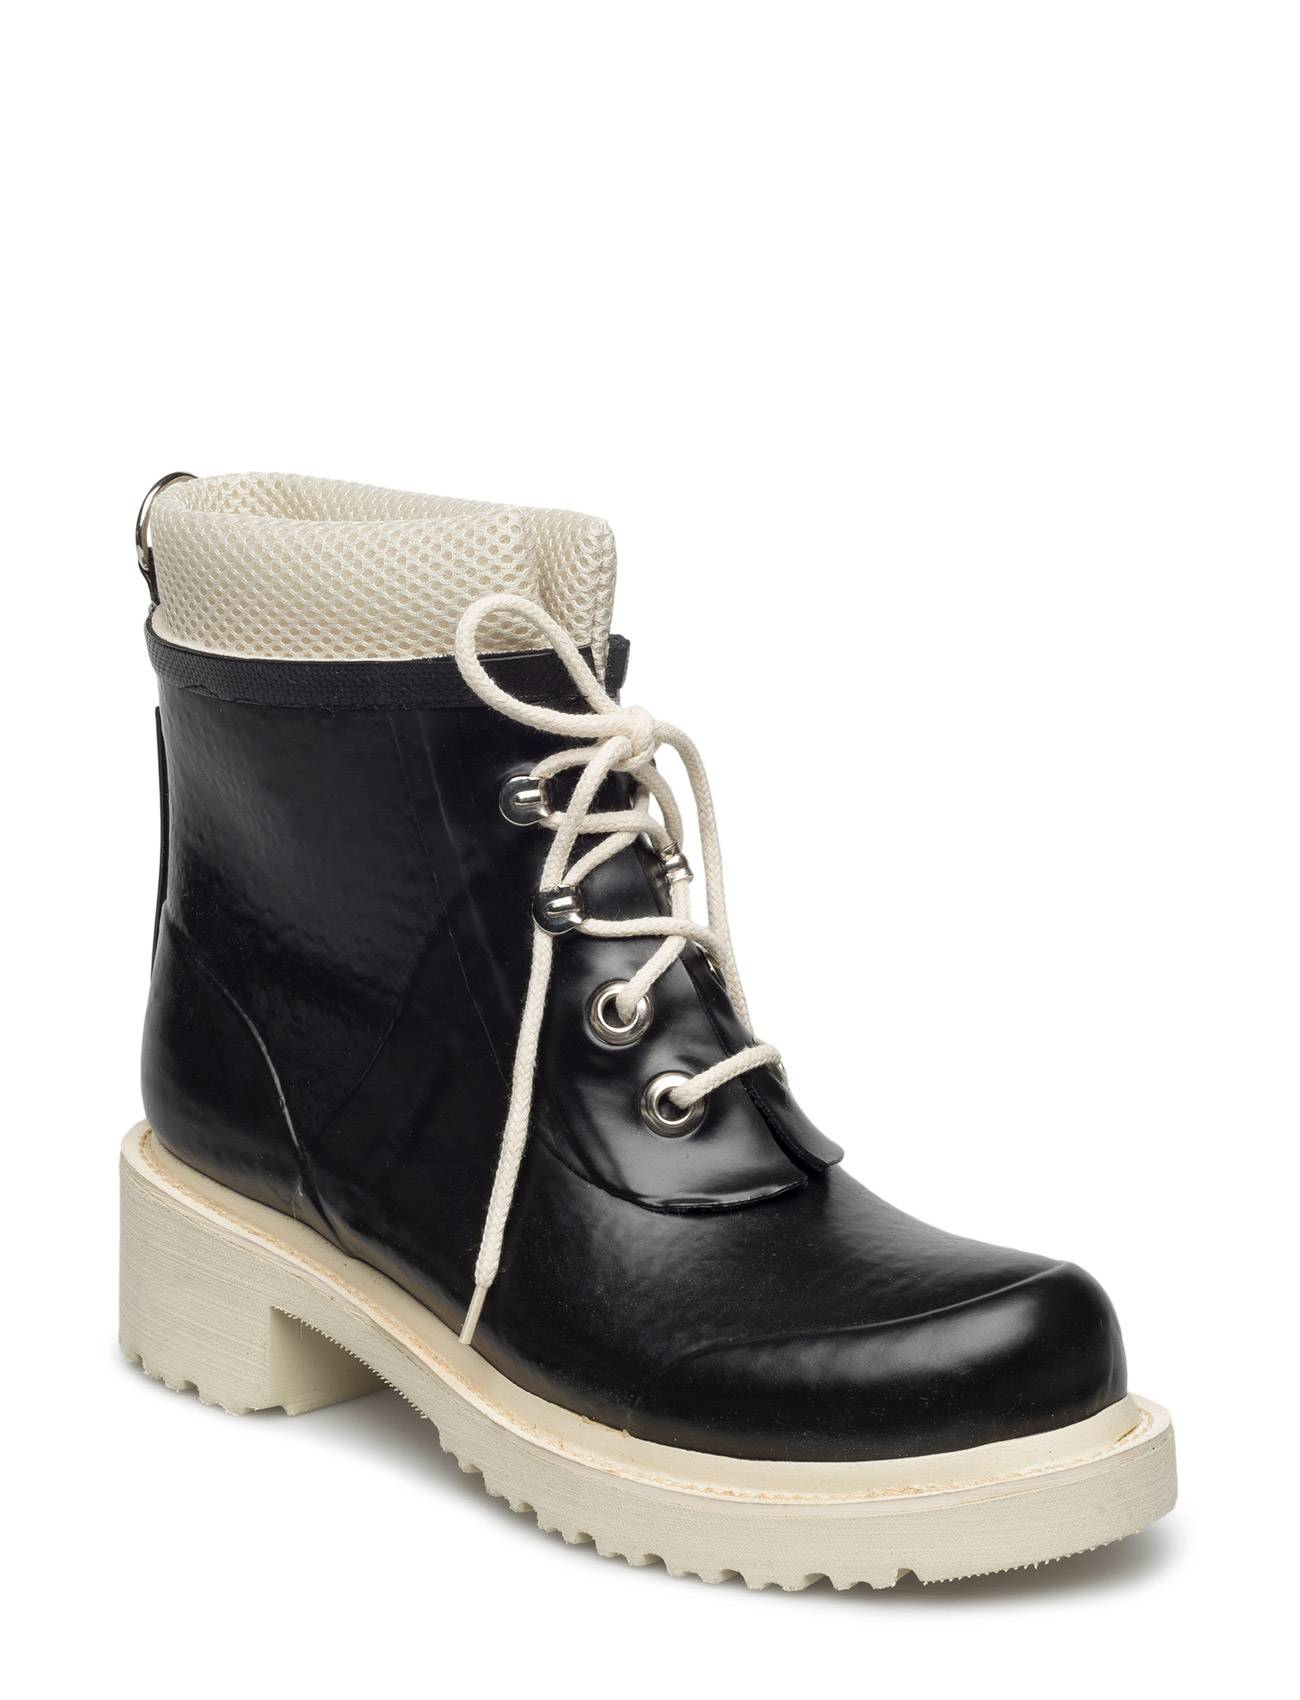 Ilse Jacobsen Women Short Rub Boots